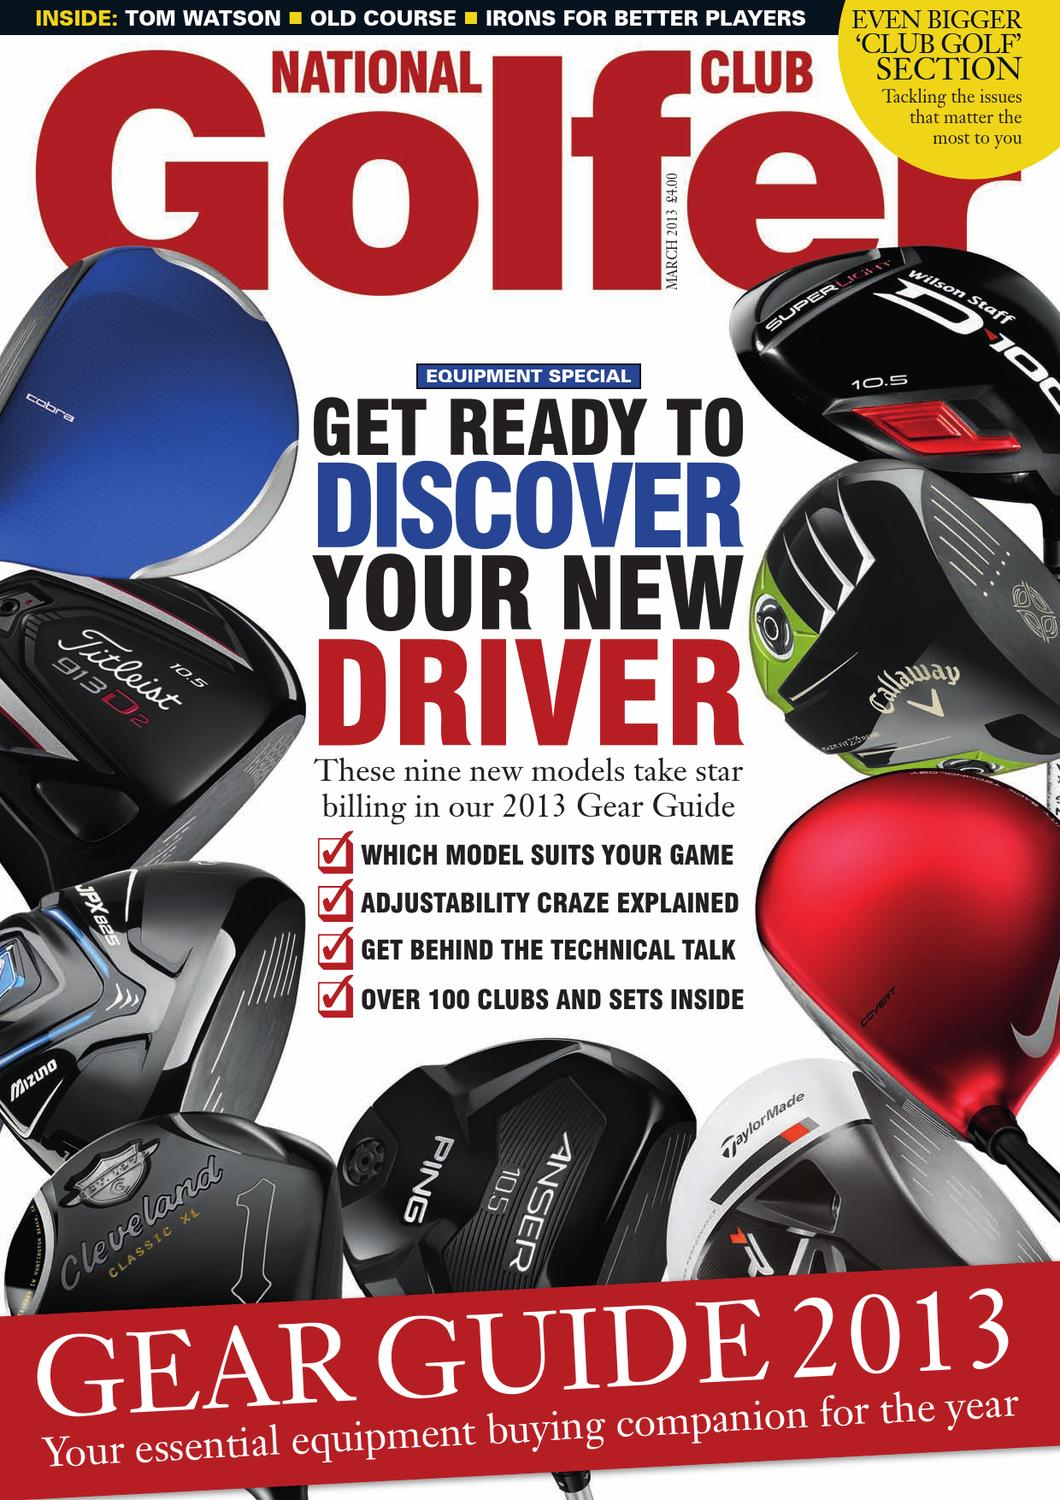 on sale 08a62 74919 National Club Golfer March 2013 Issue by Sports Publications - issuu